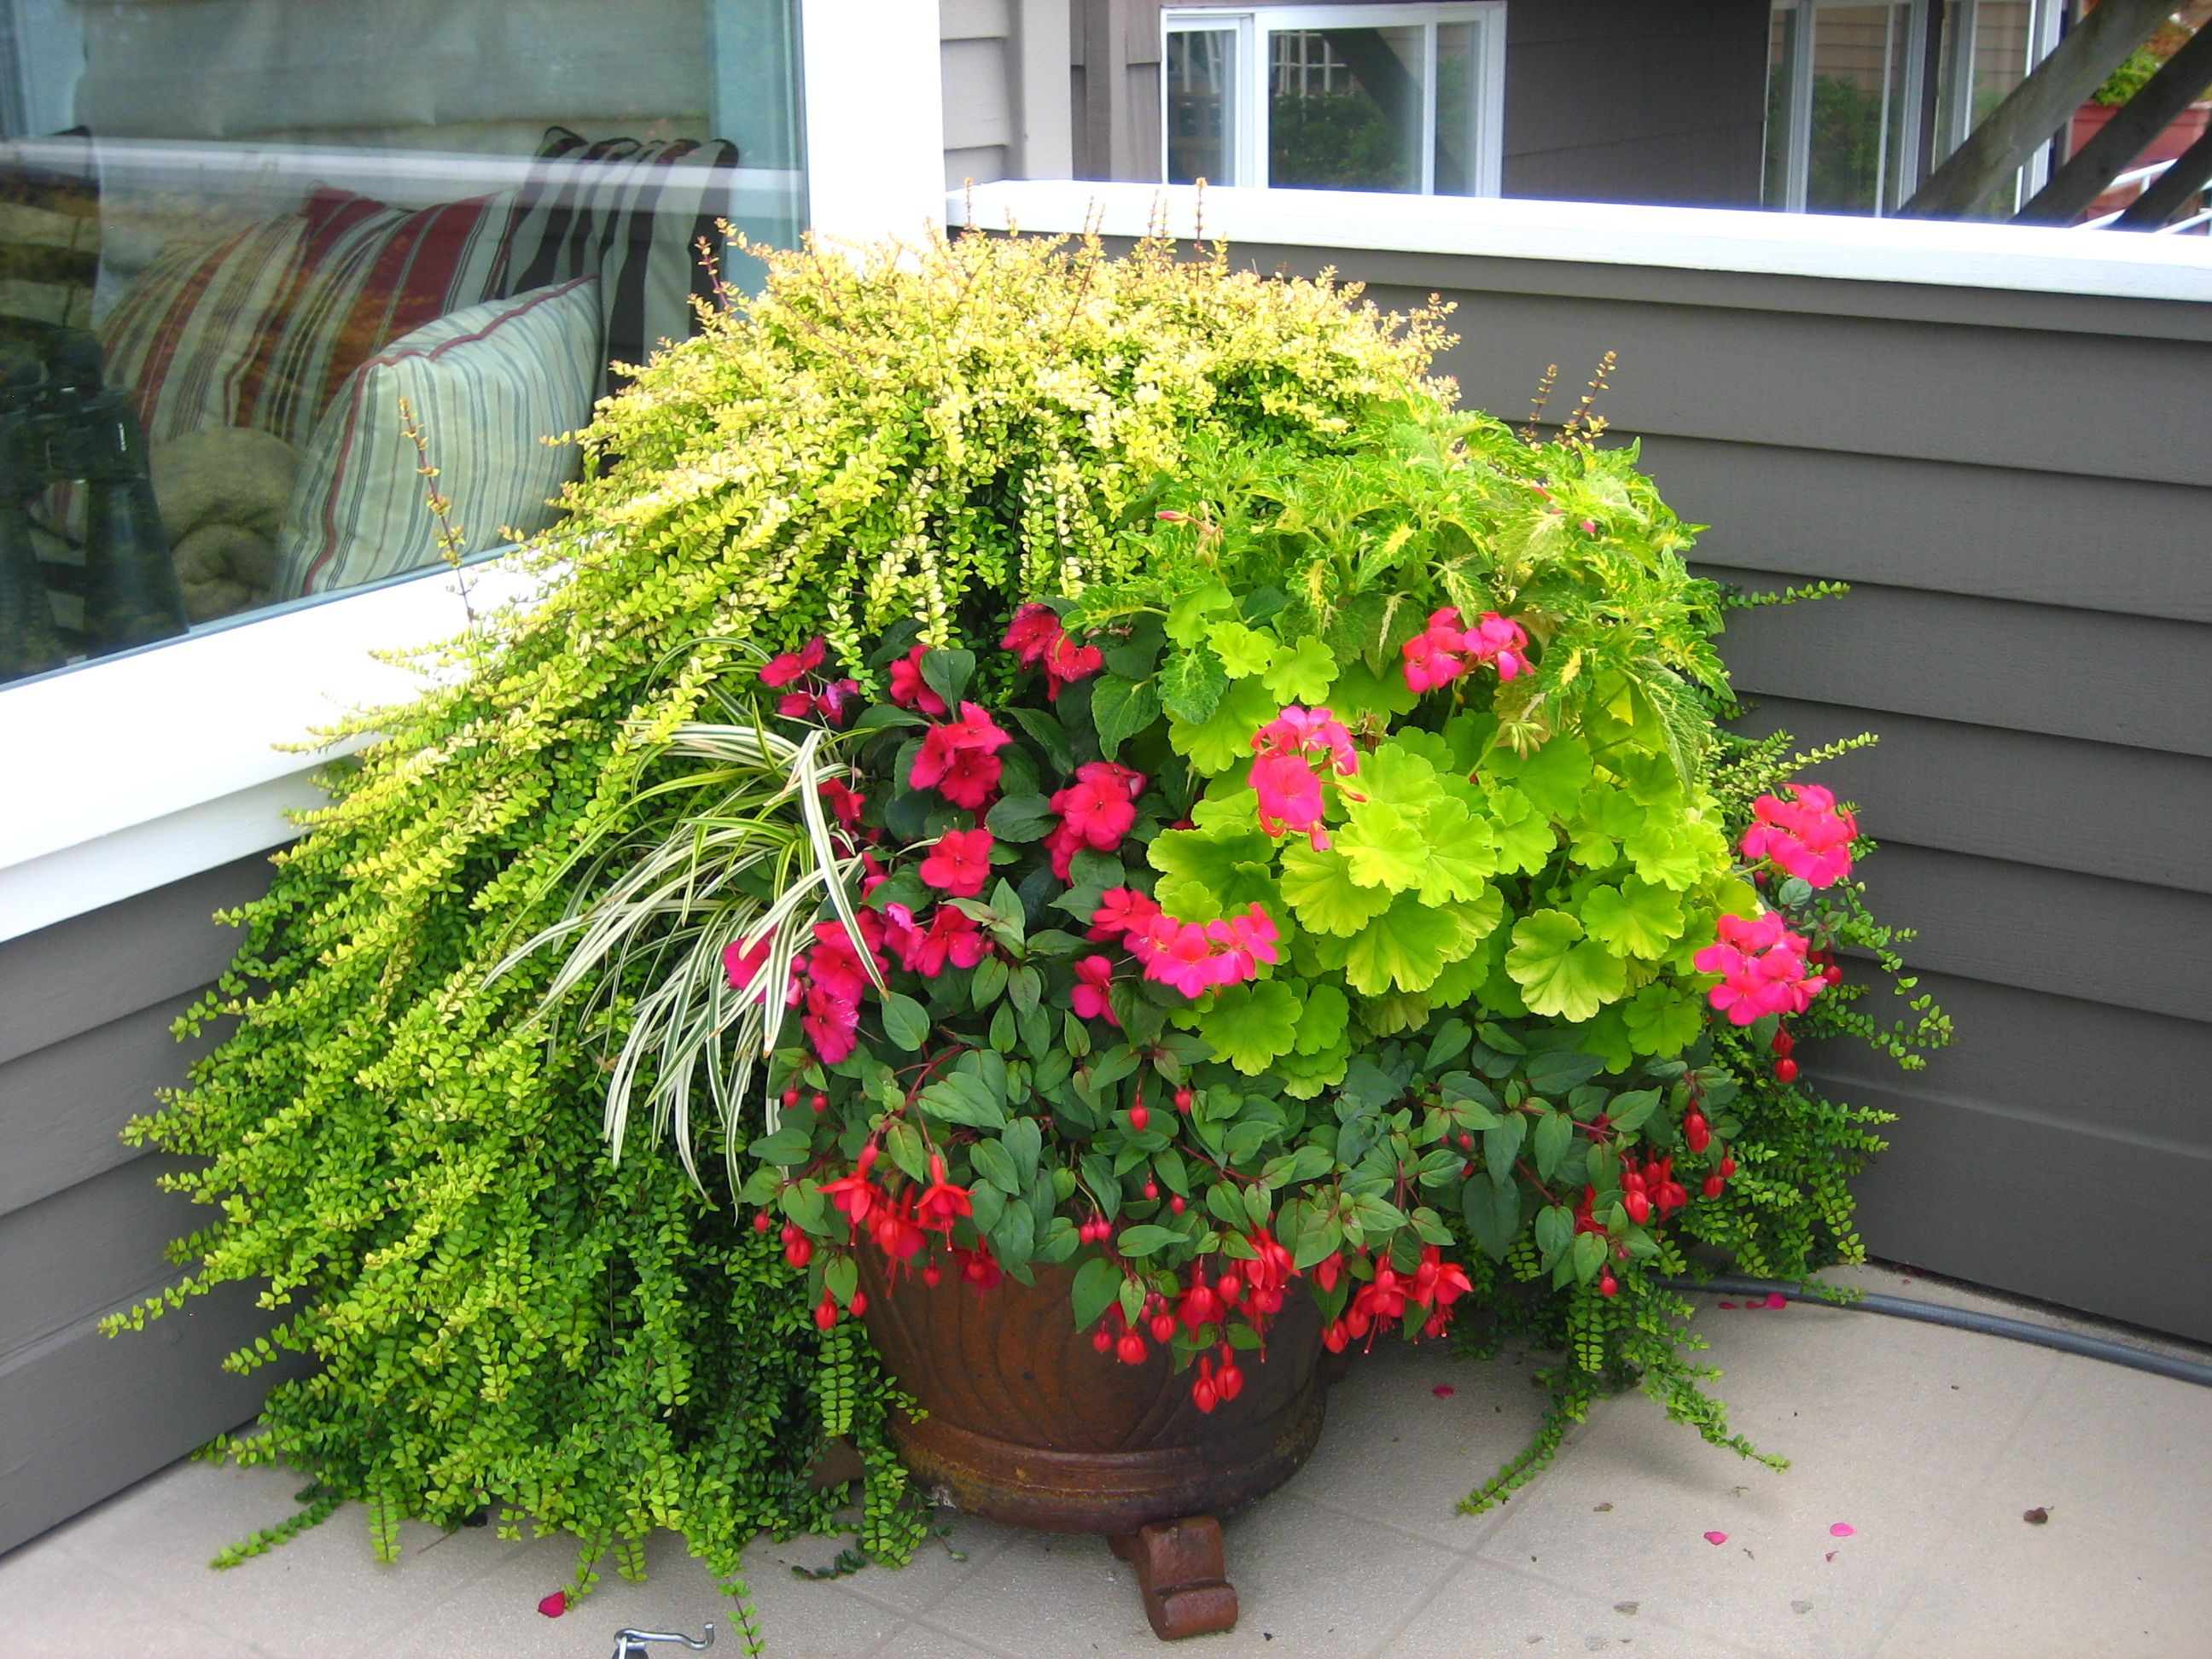 Container Flower Ideas For Partial Sun Can Include Fuschias And Geraniums Consider How Eac Container Gardening Garden Services Container Gardening Vegetables